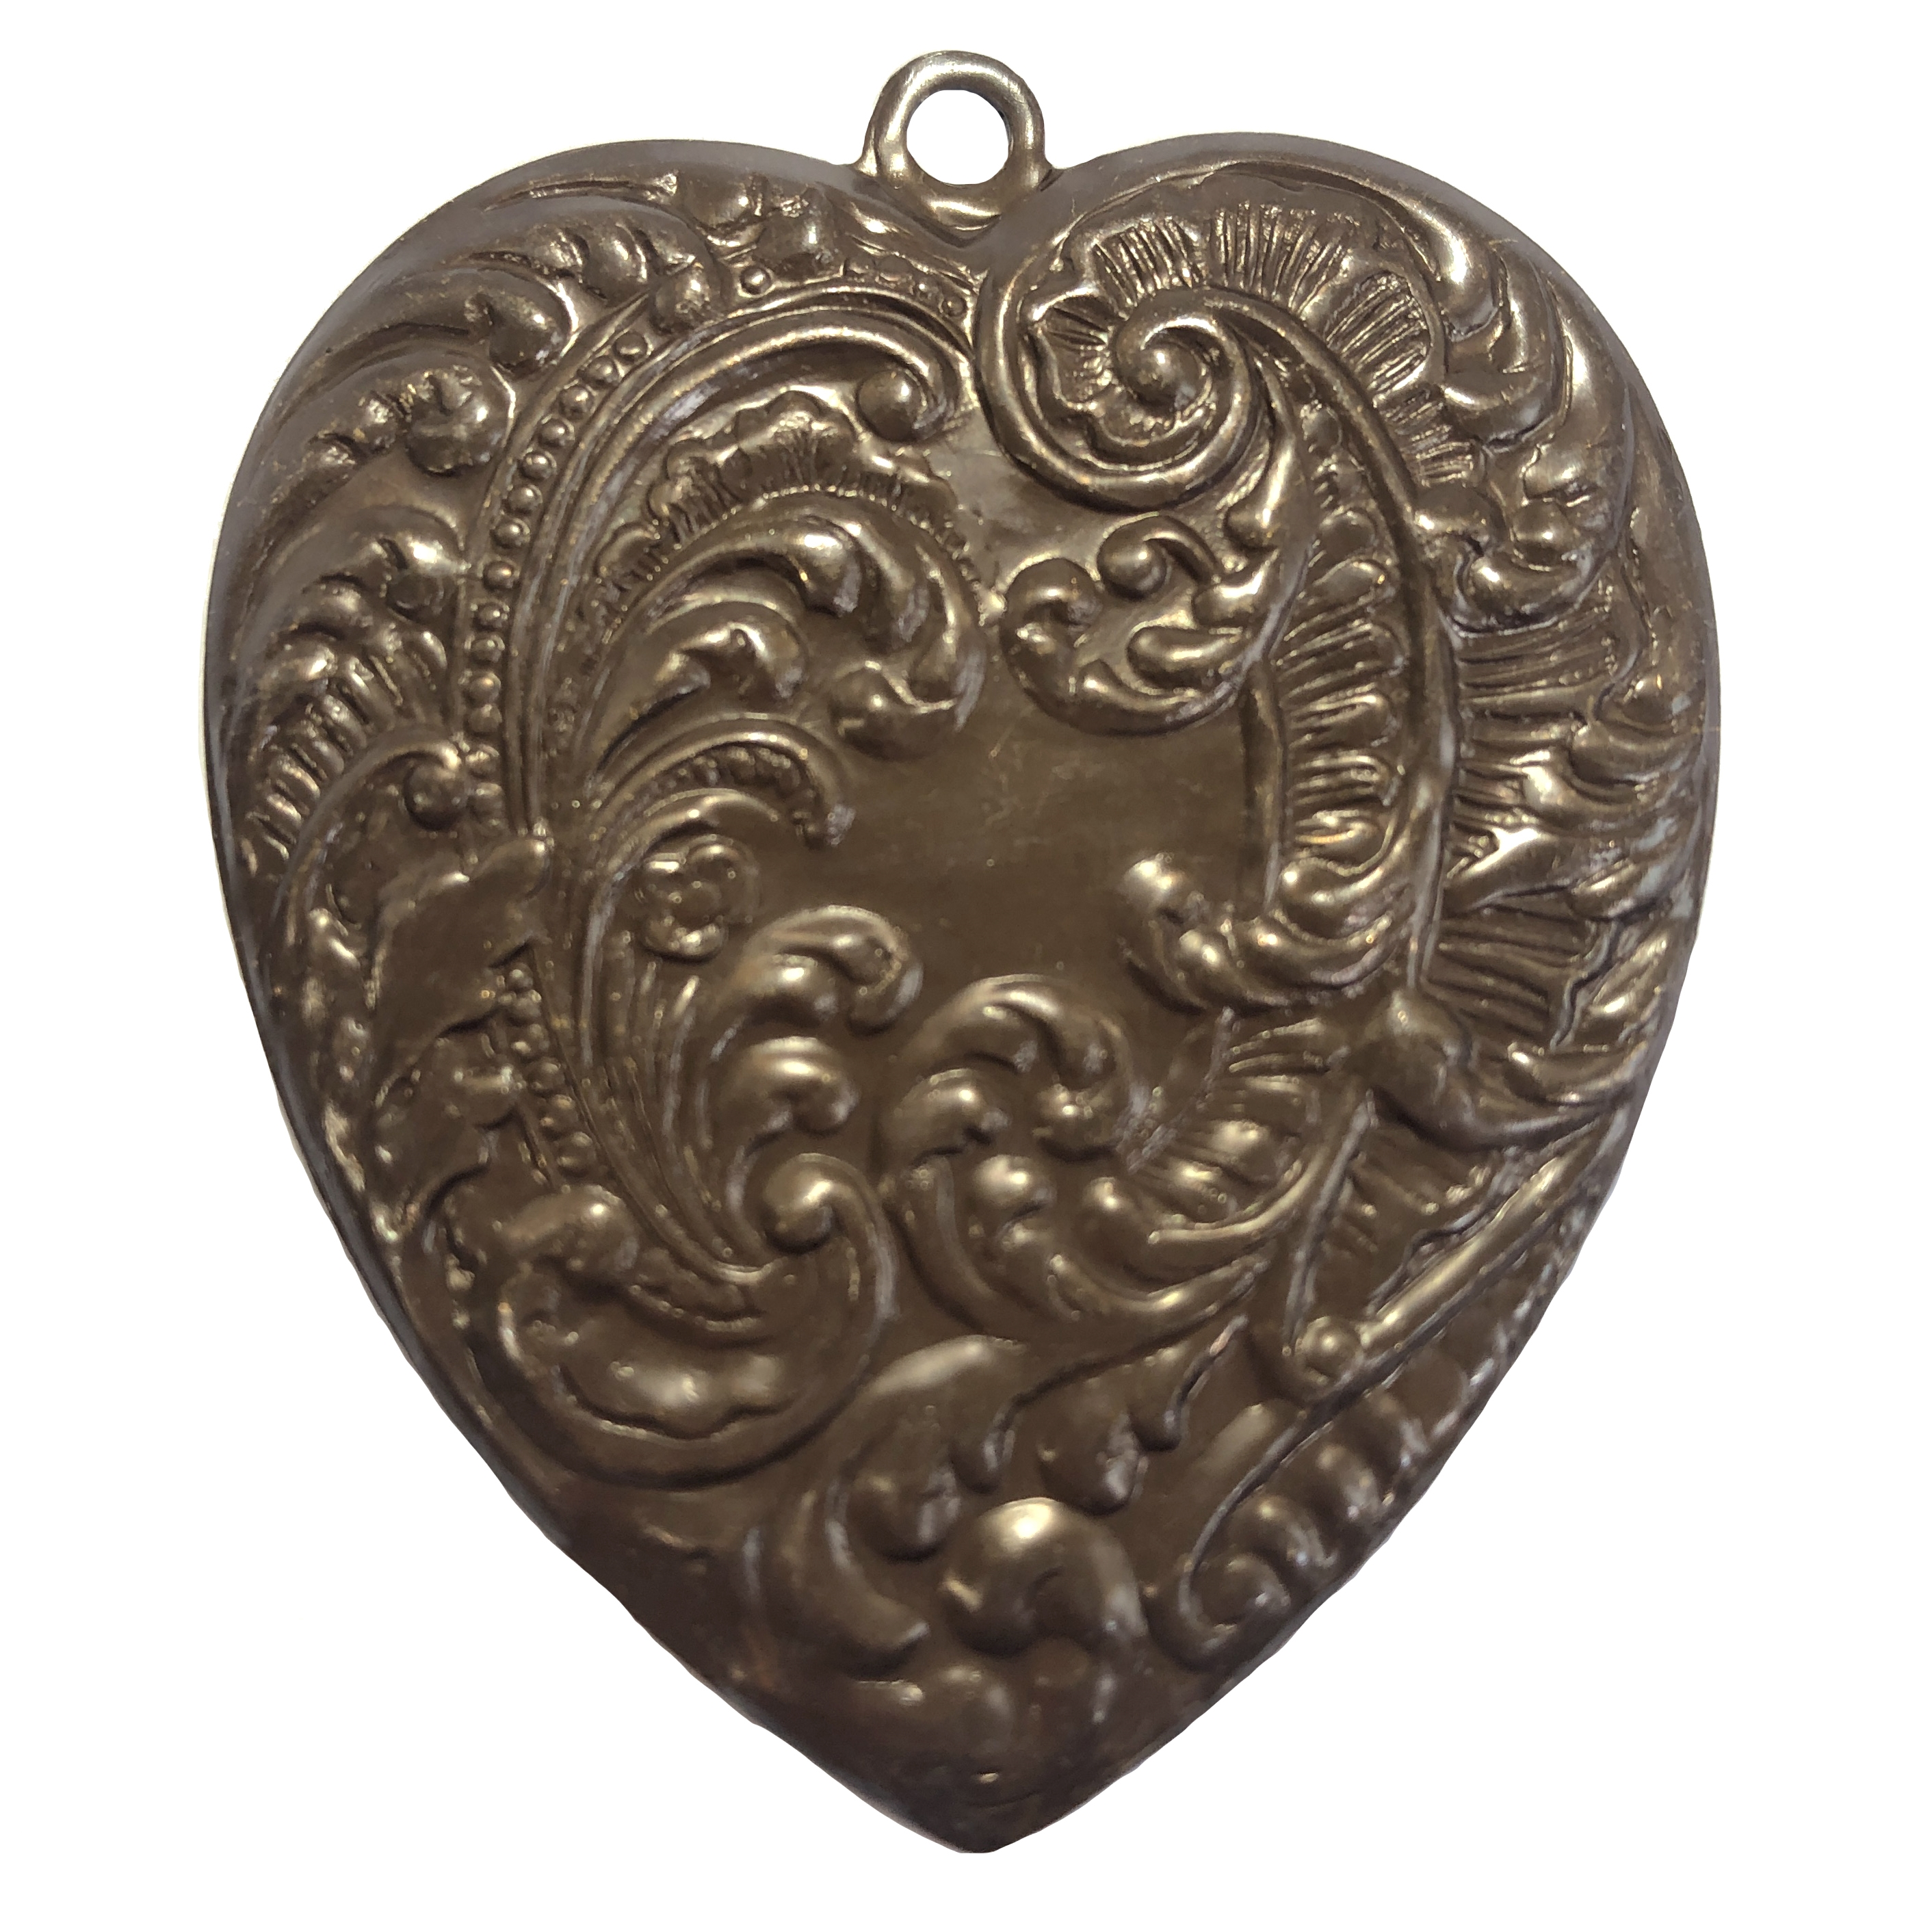 brass heart, Victorian heart, choxie, 0120, 54x46mm, chocolate brass, US made, nickel free, bsueboutiques, jewelry making supplies, vintage jewelry supplies, feather style heart, pendant, heart pendant